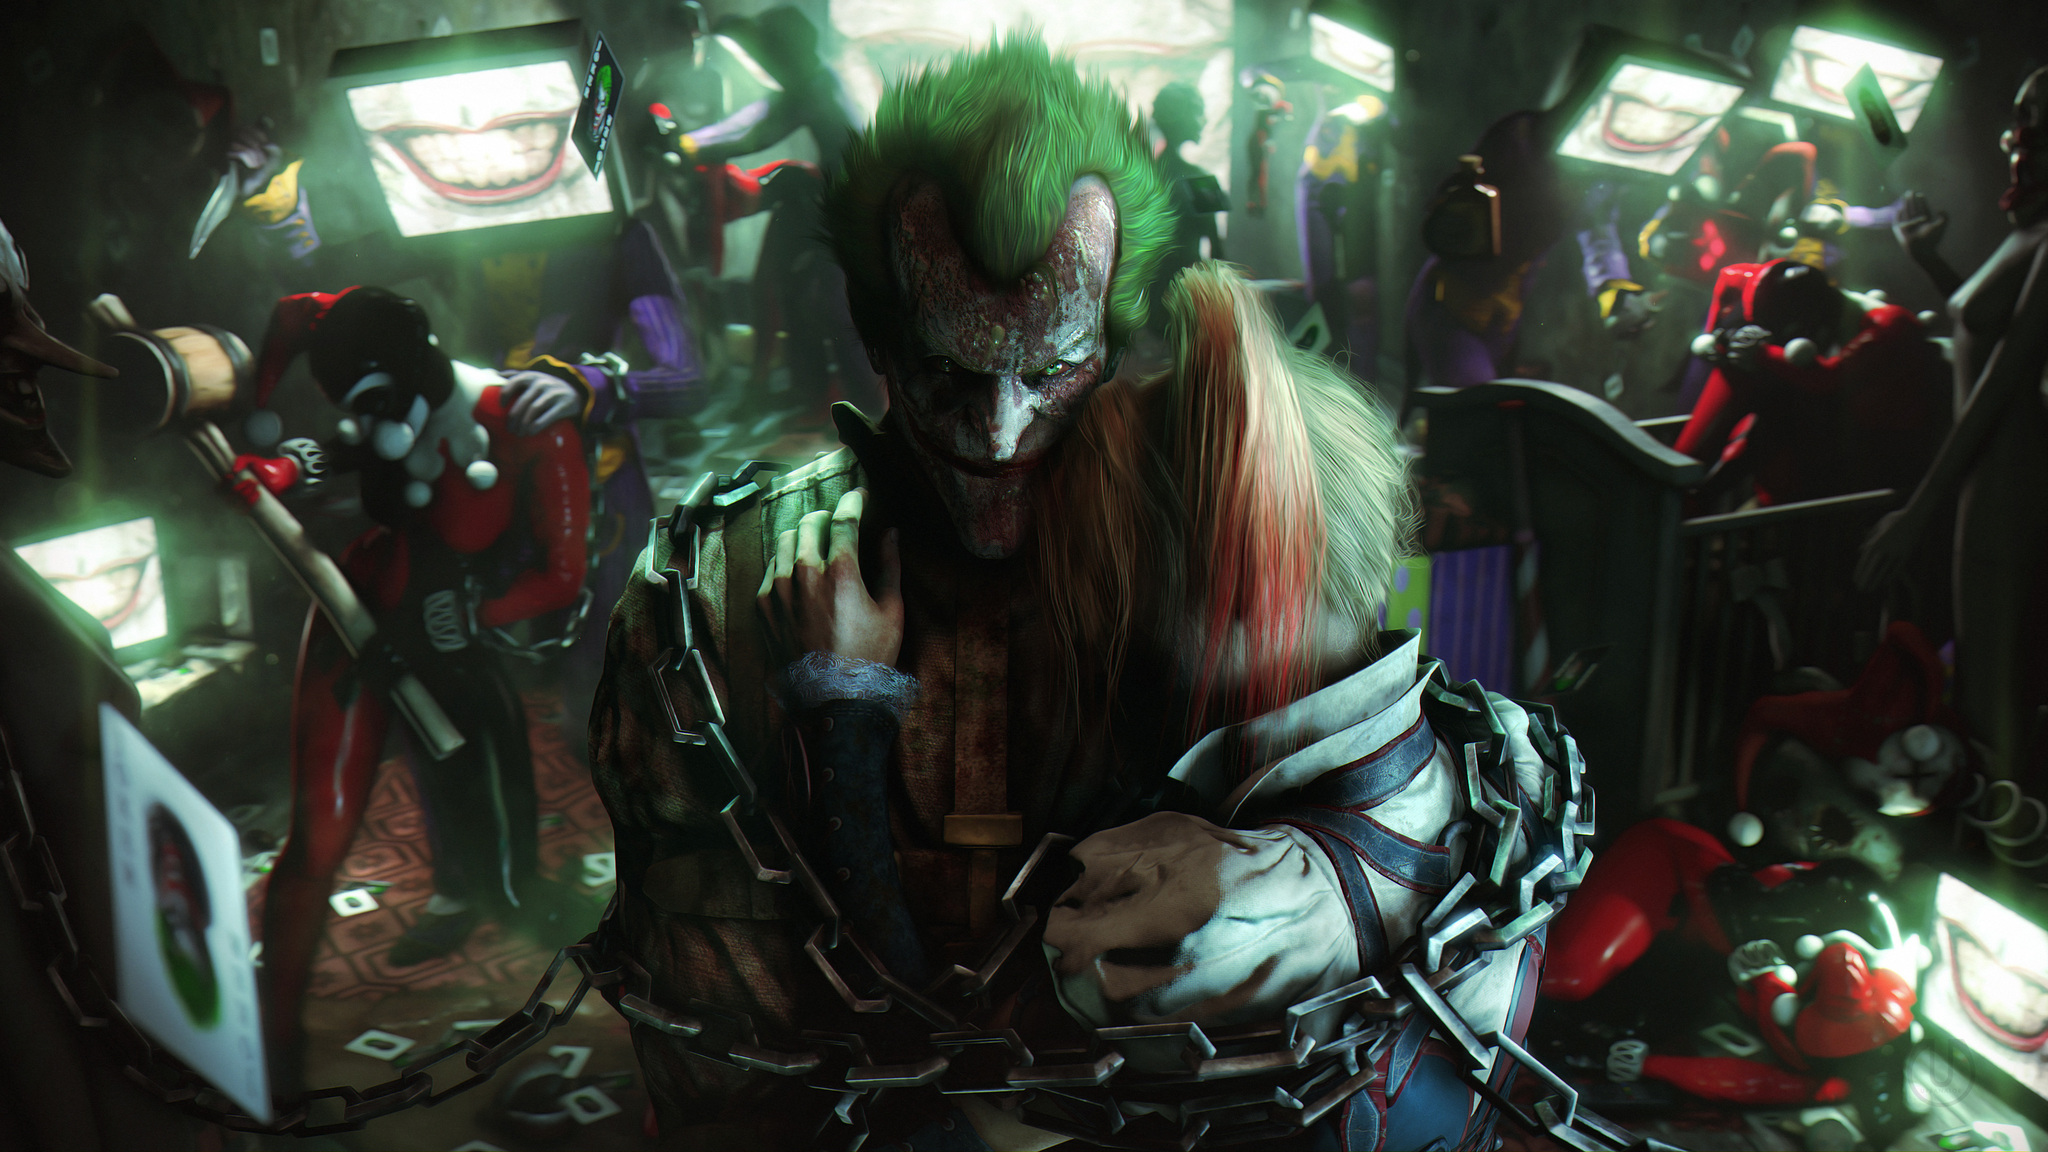 joker-and-harley-quinn-fan-art-za.jpg